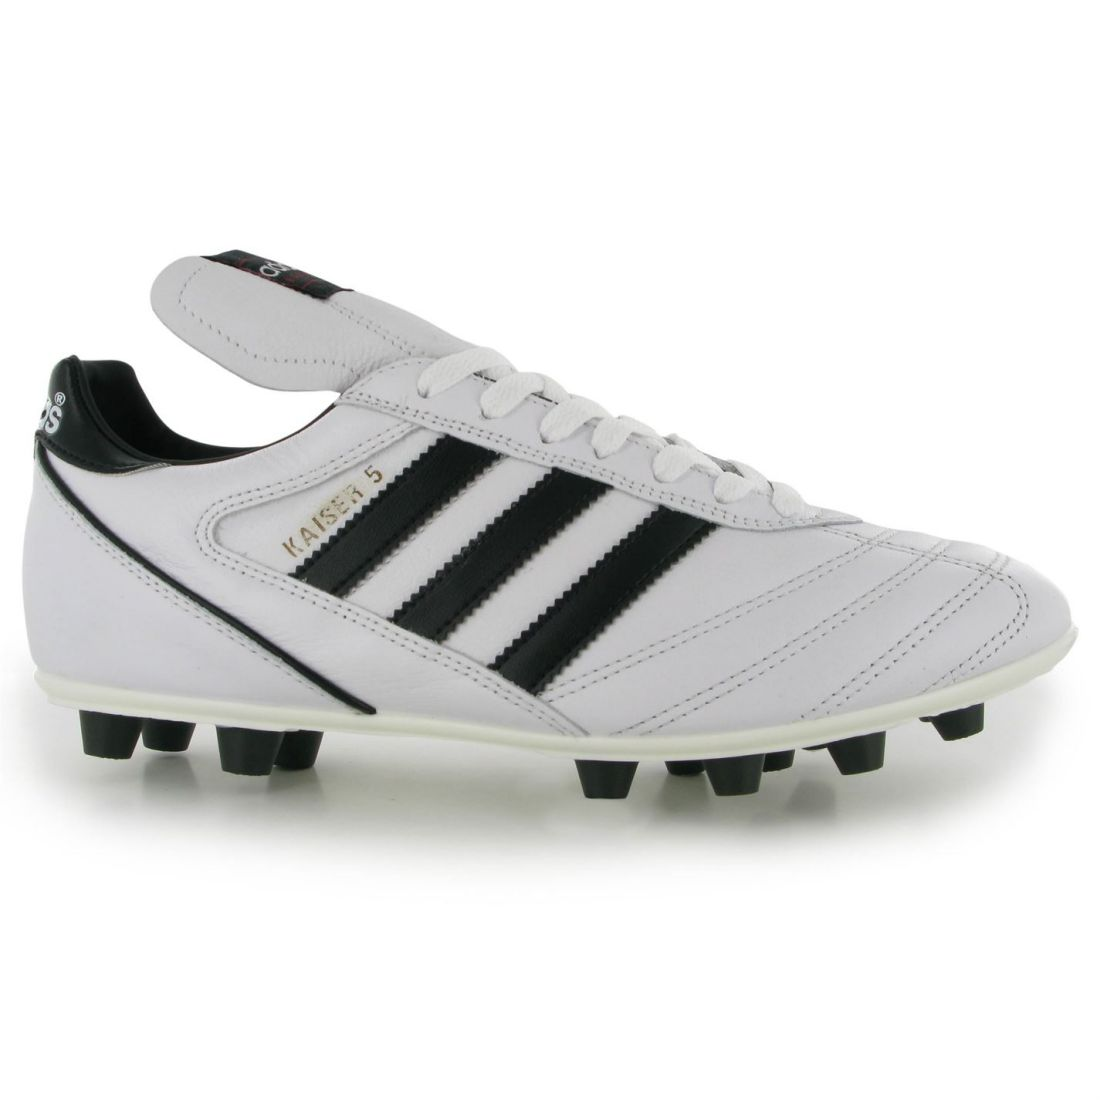 4c123eadf69c Details About Adidas Mens Gents Kaiser Liga Fg Football Boots Laces  Fastened Shoes Footwear